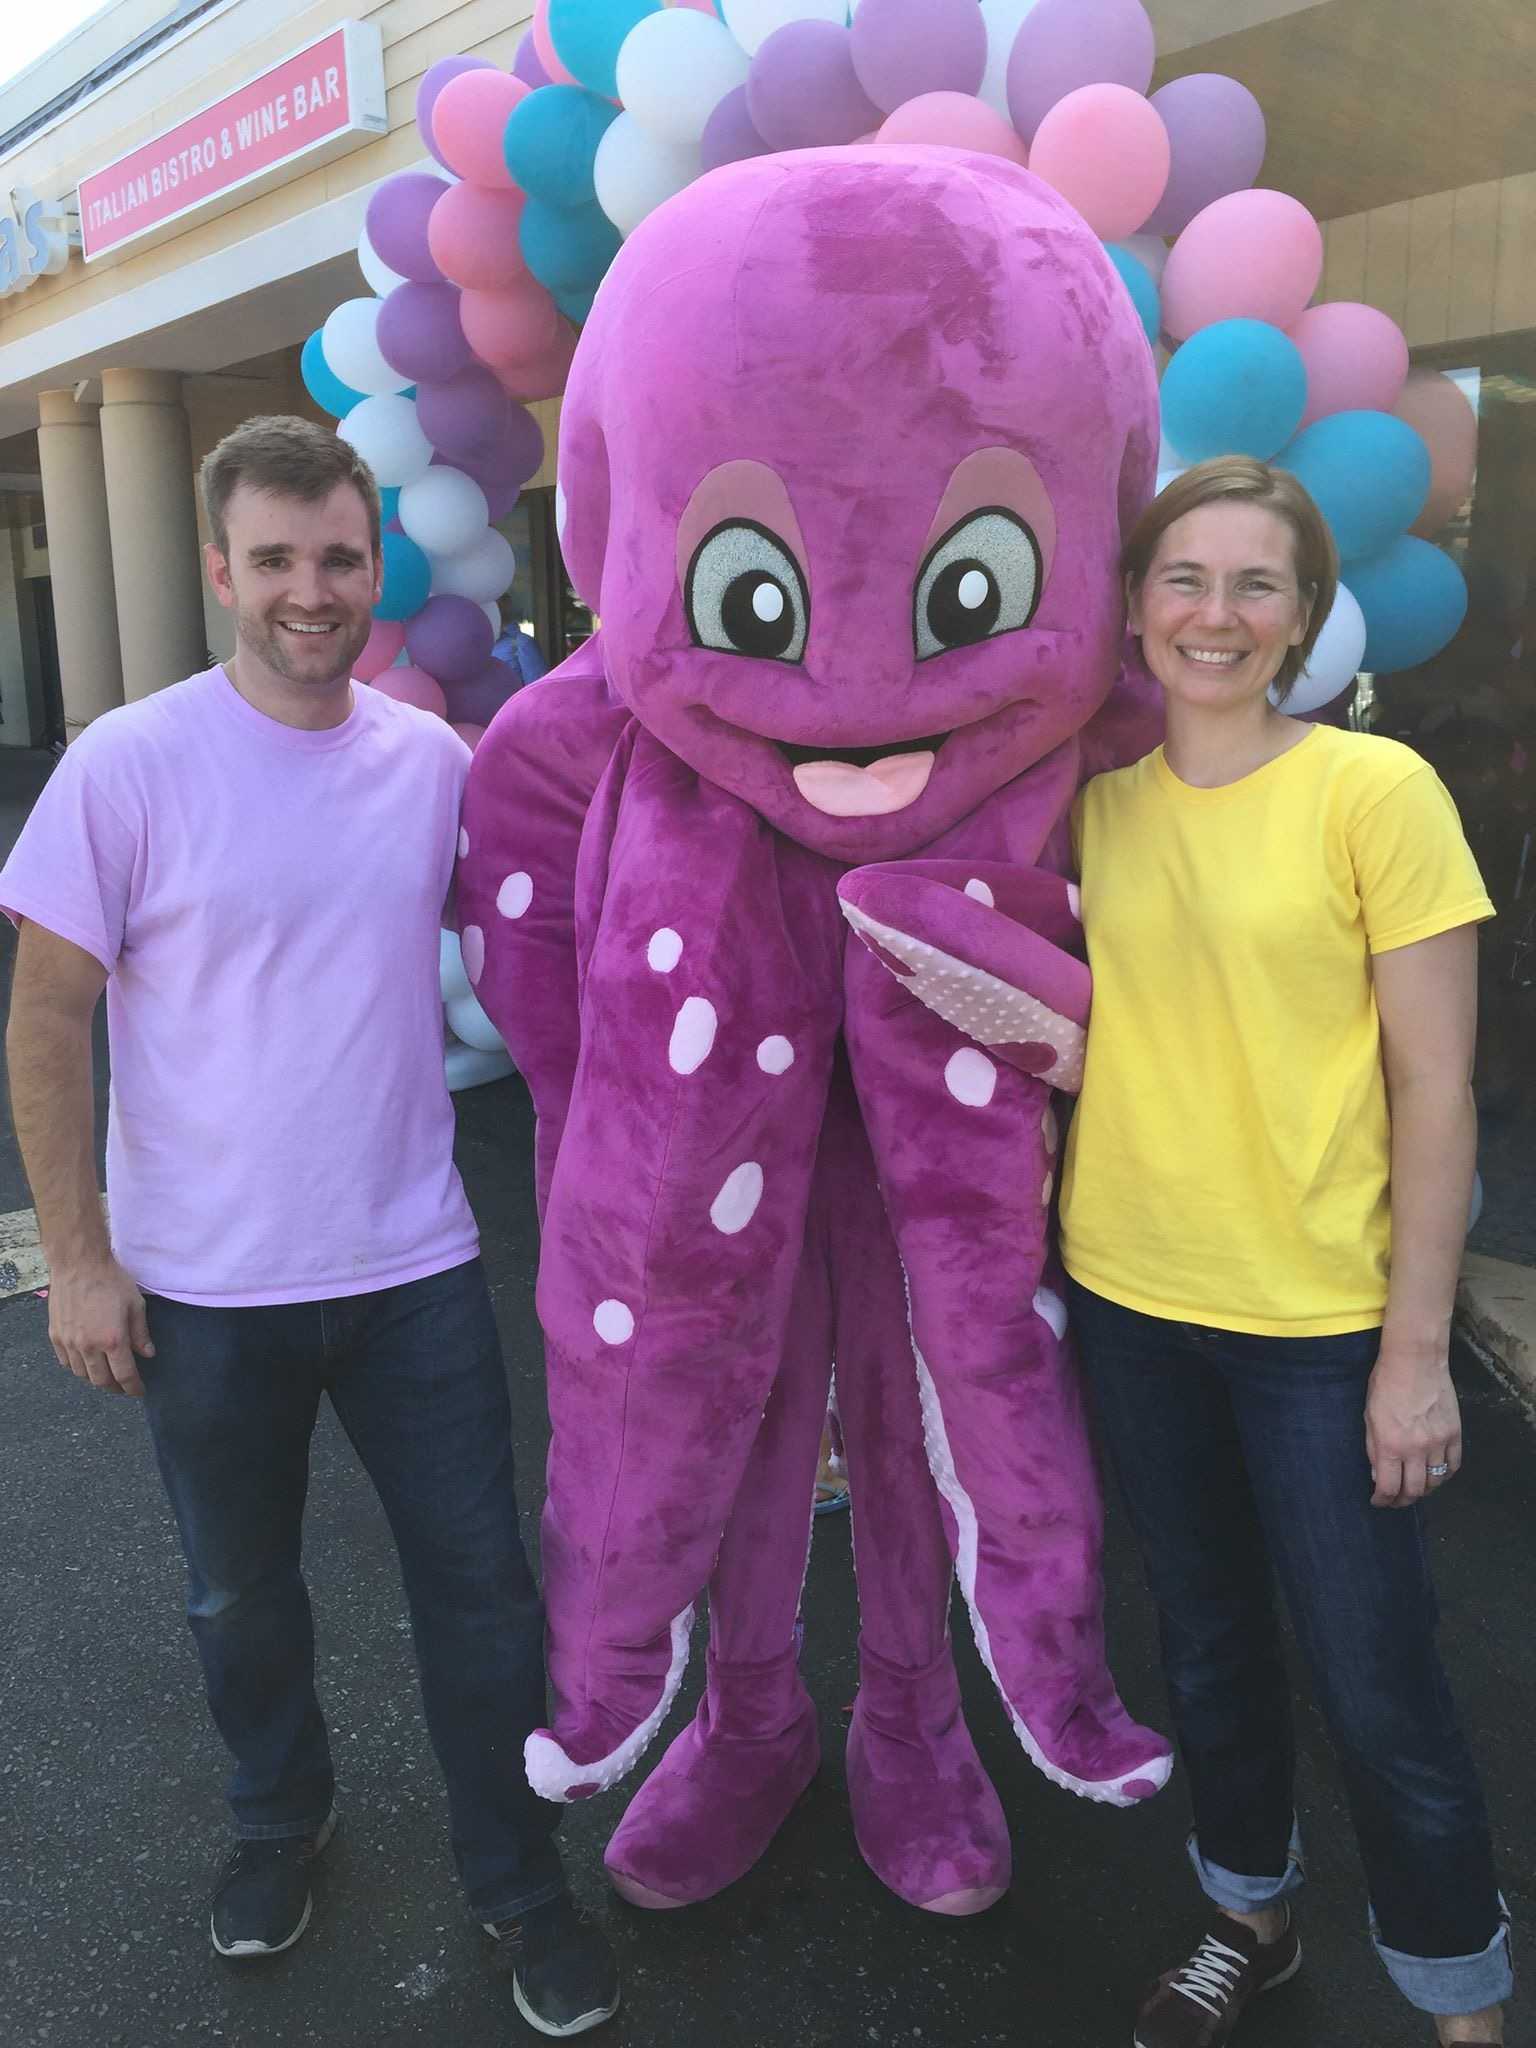 Owners Mike and Lindsay McEwen with Gary, the Mascot